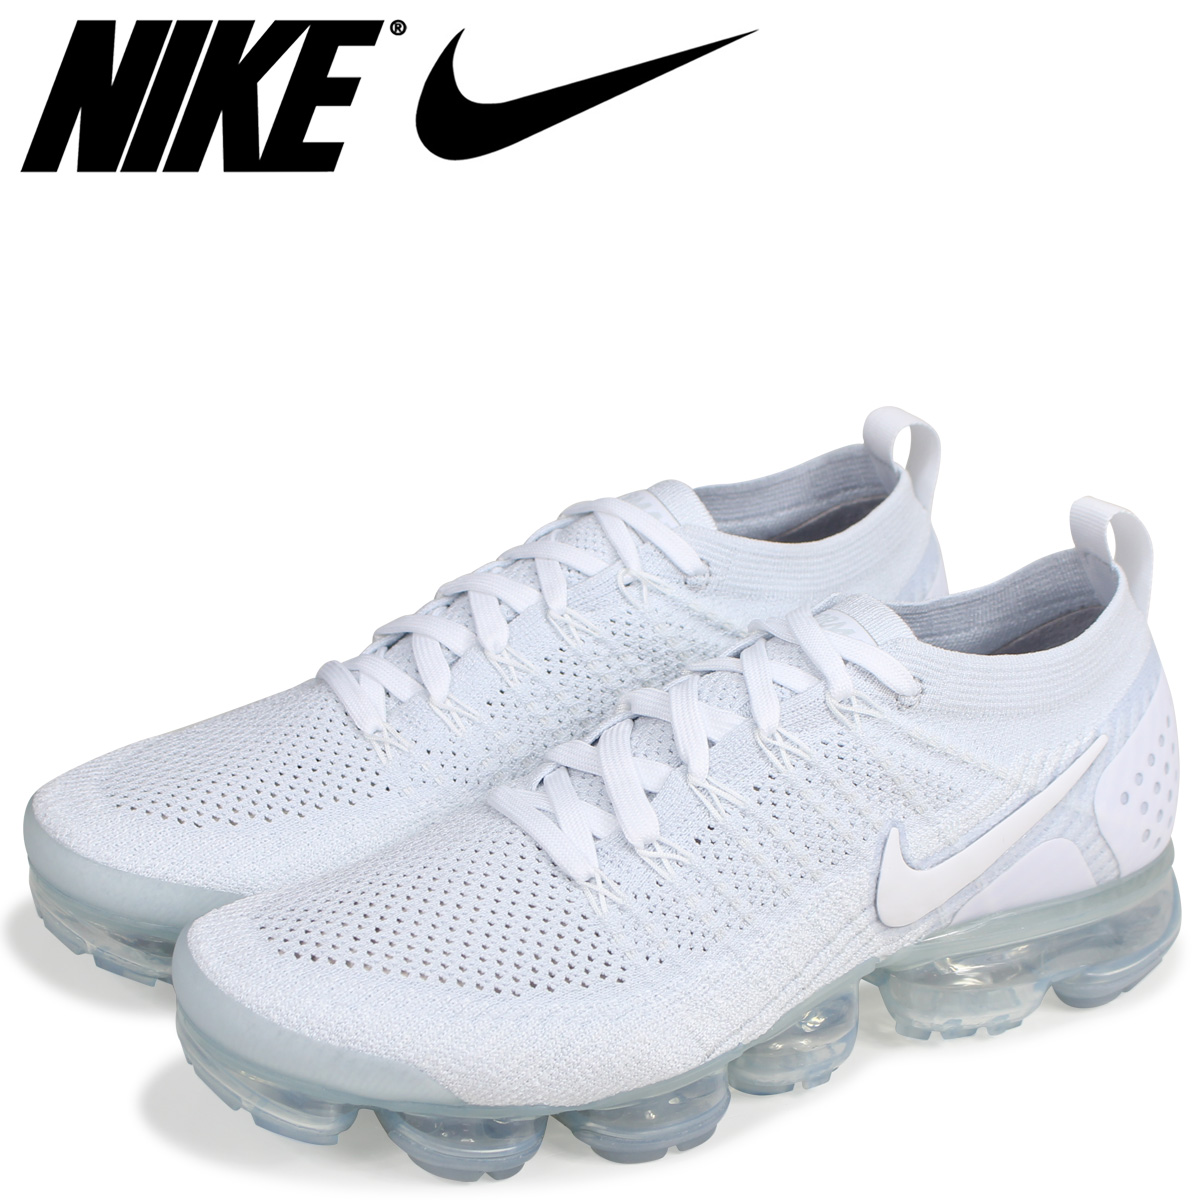 842 Vapormax Men White Max Vapor Nike Flyknit 100 Air Sneakers Fried Food 942 Knit 2 mwvN8nO0